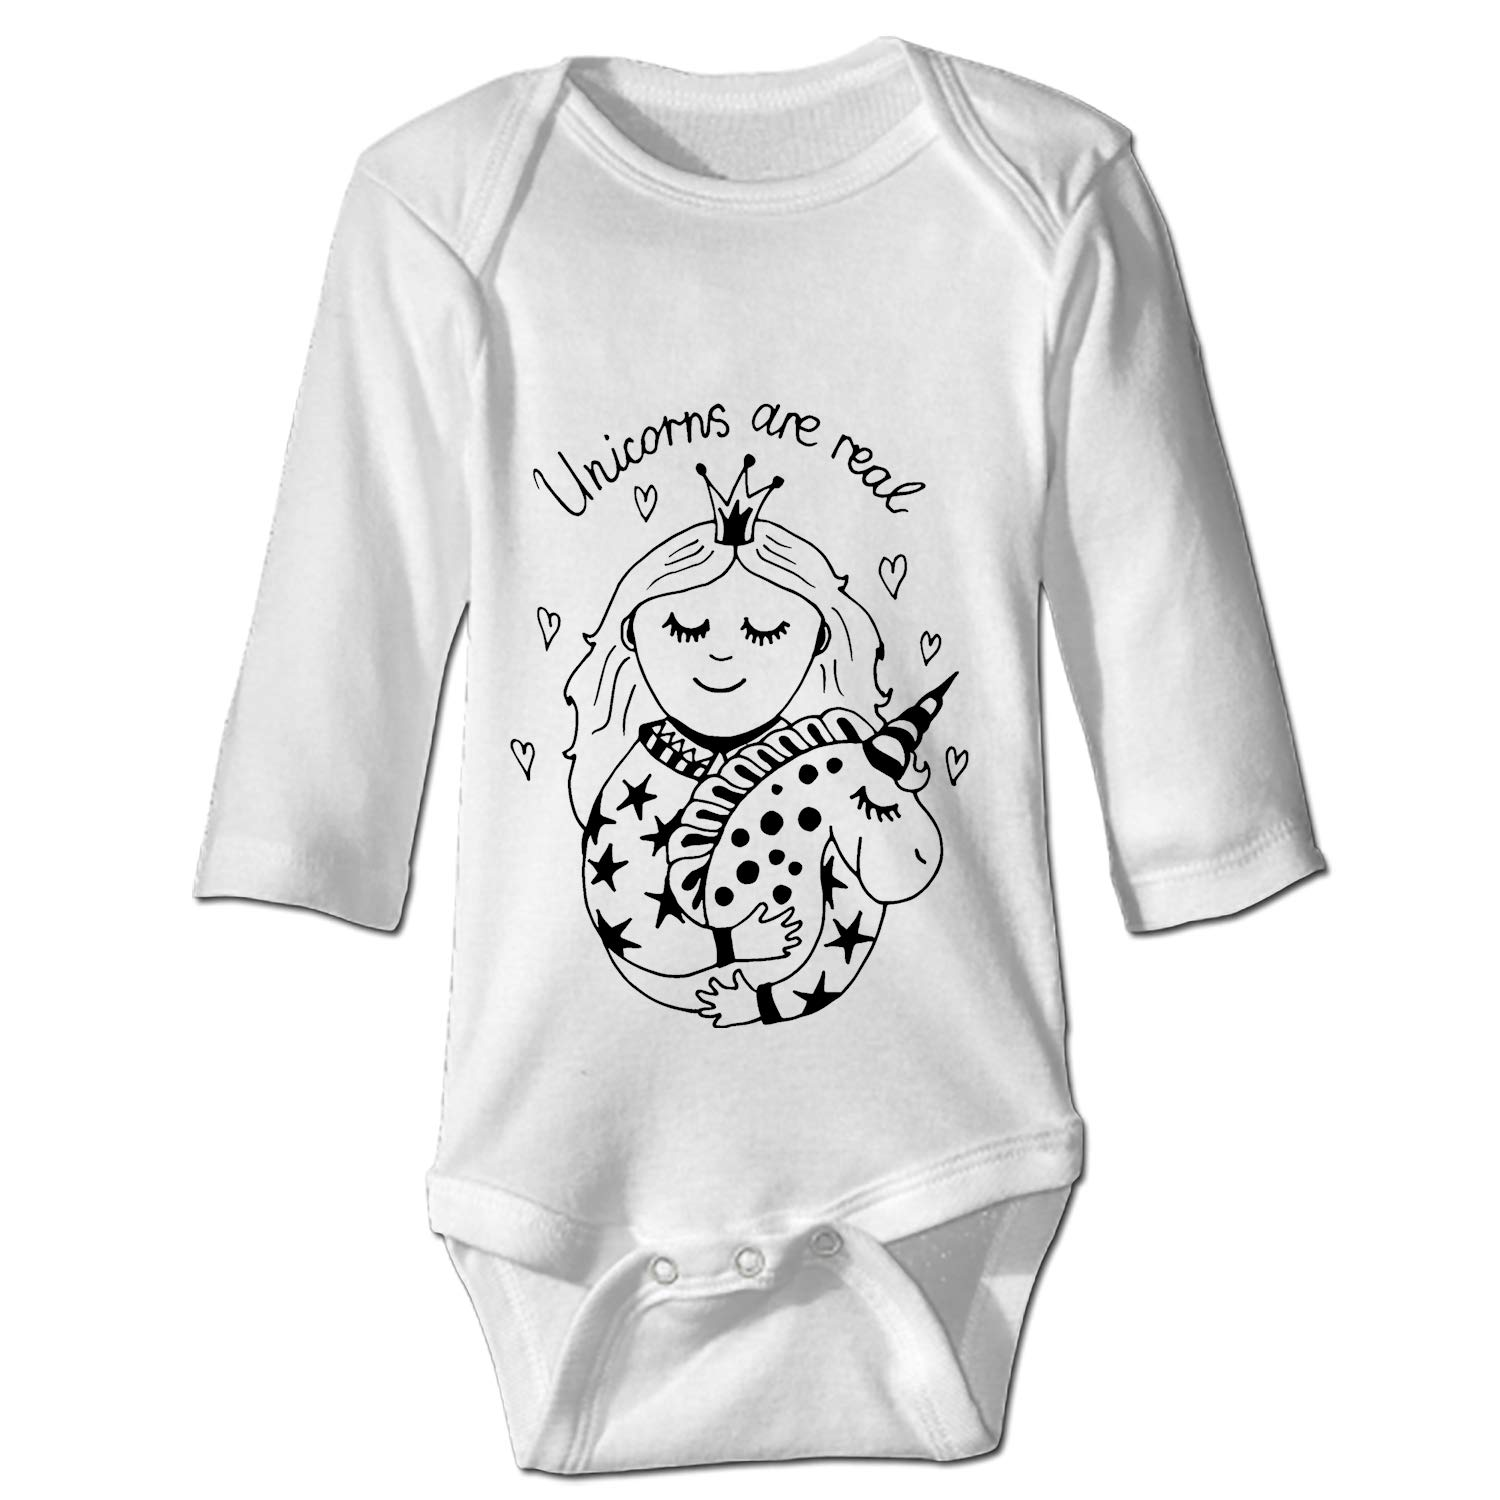 The Horse Unisex Baby Long-Sleeve Onesies Cotton Bodysuits Infant Romper Clothes